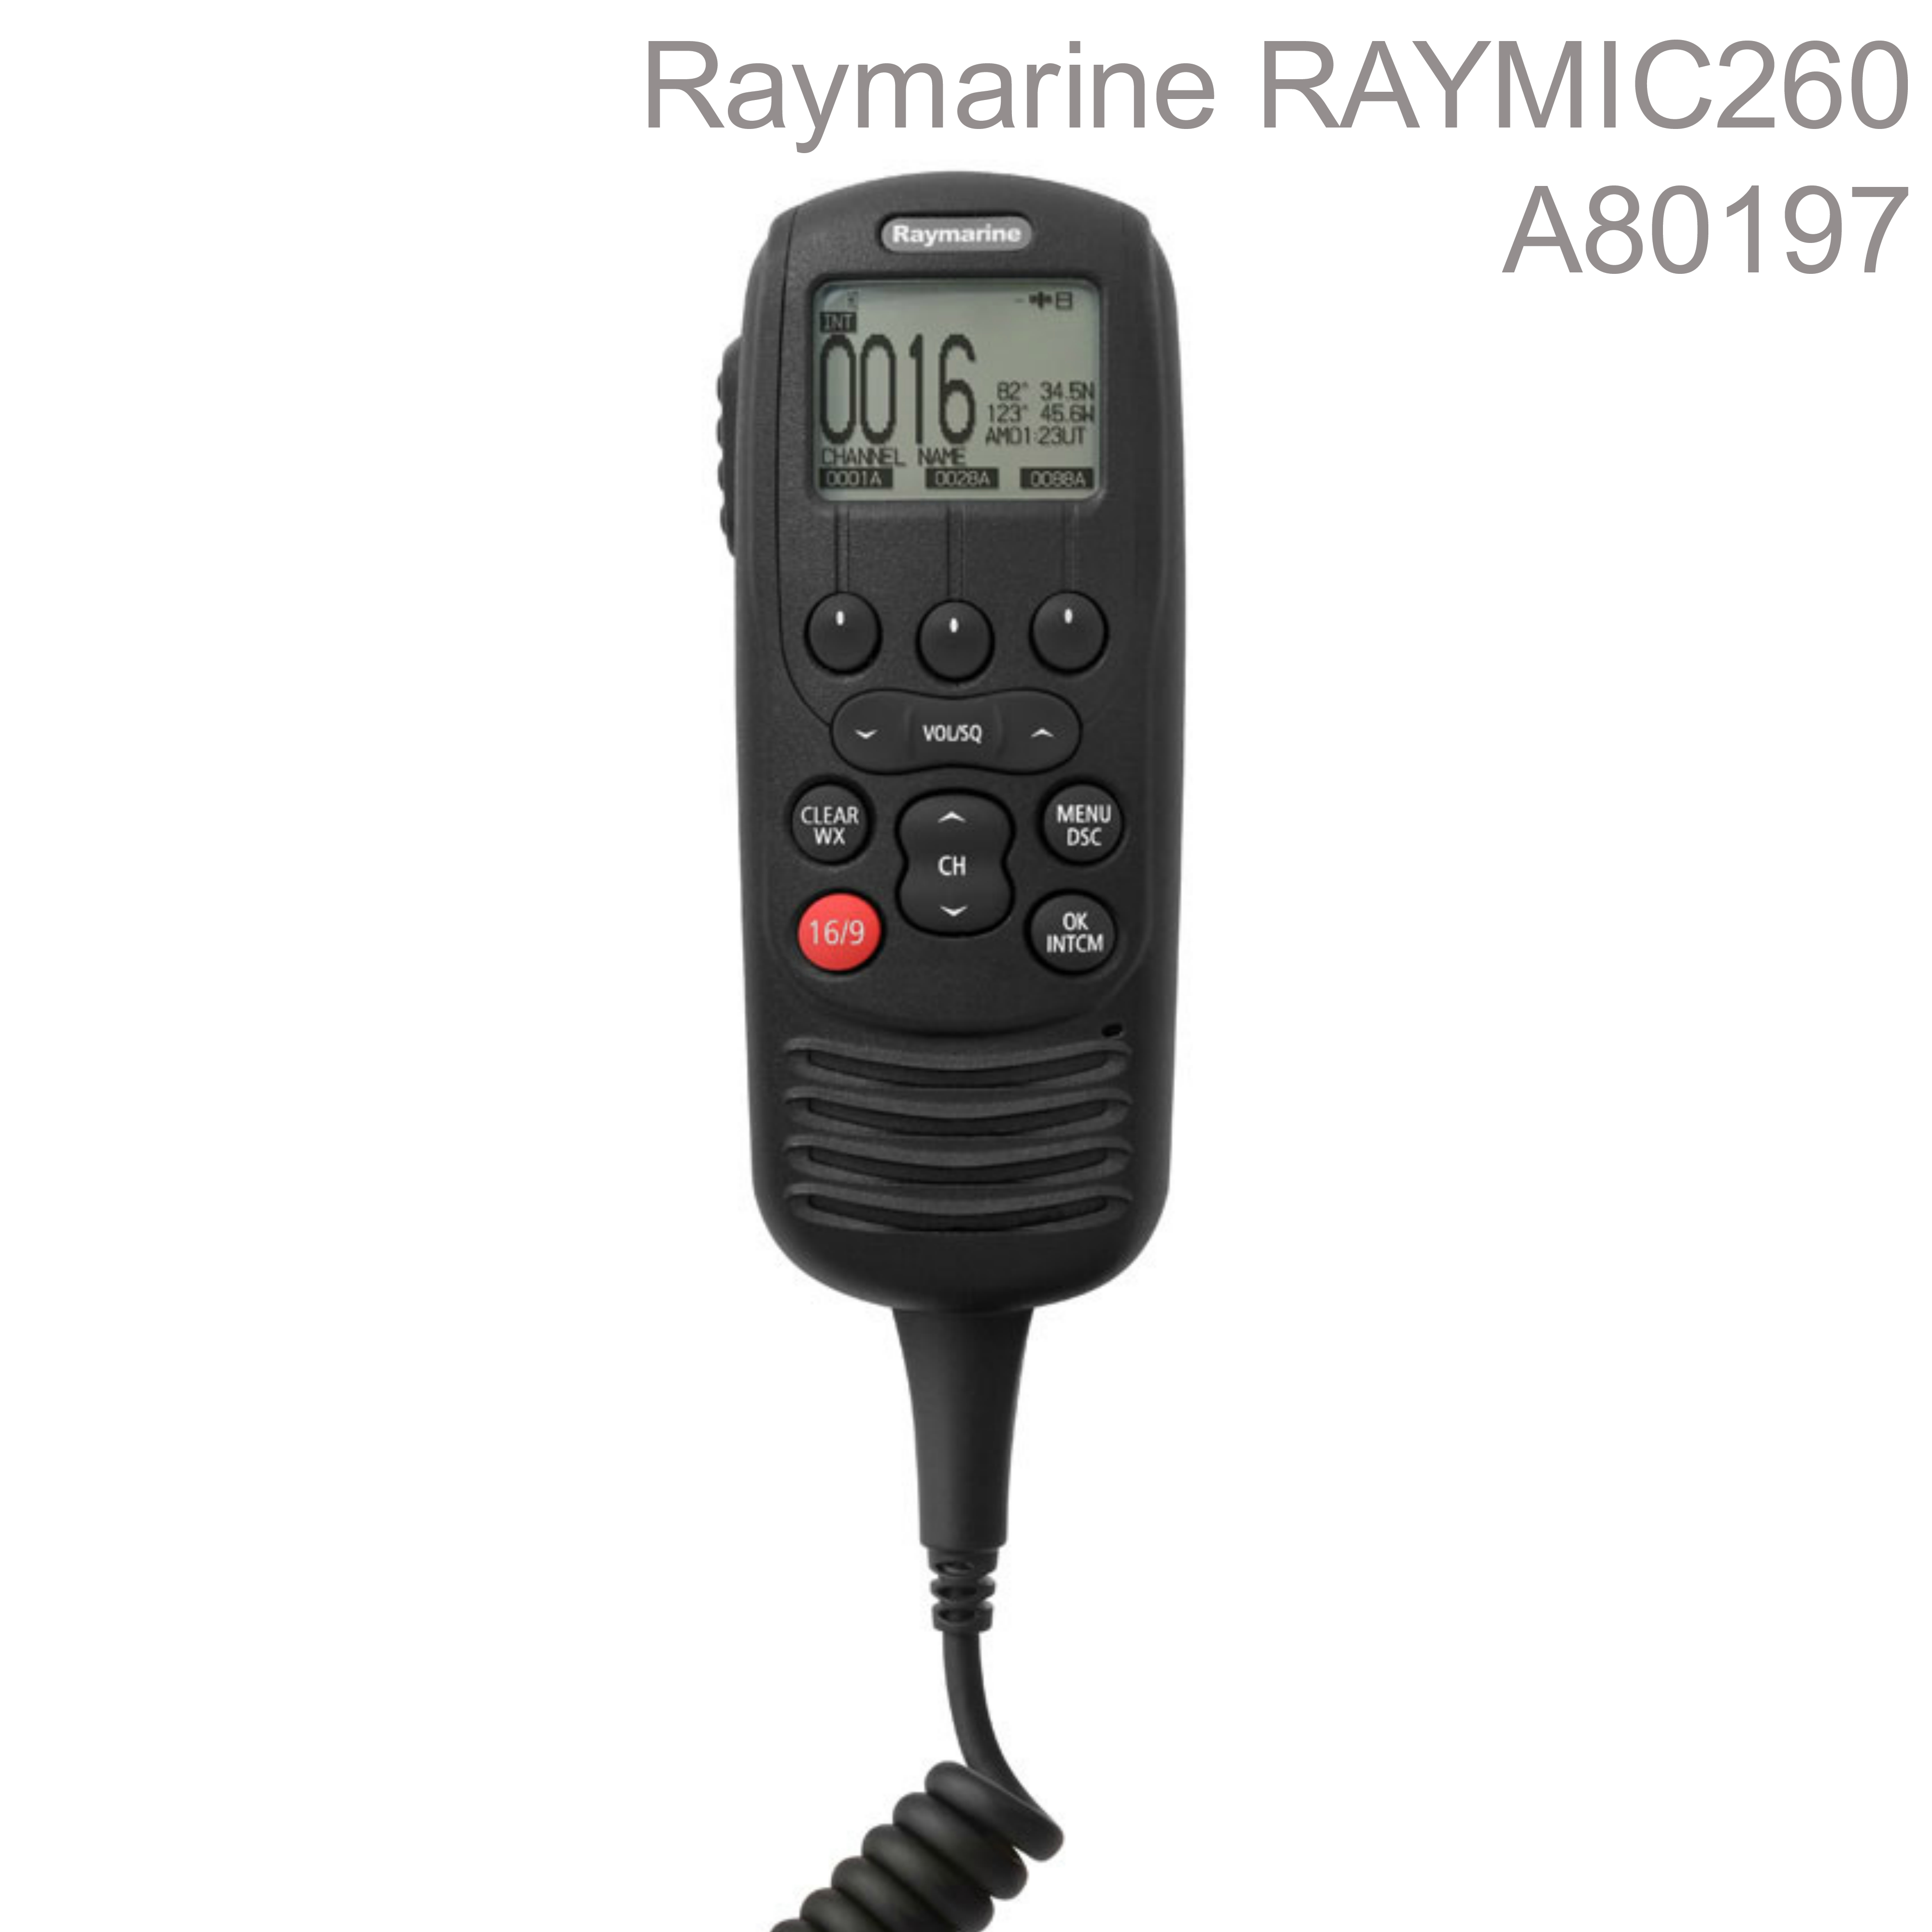 Raymarine-A80197|RAYMIC 260|10m Cable|25W|Waterproof|For VHF/Radio/AIS Receiver